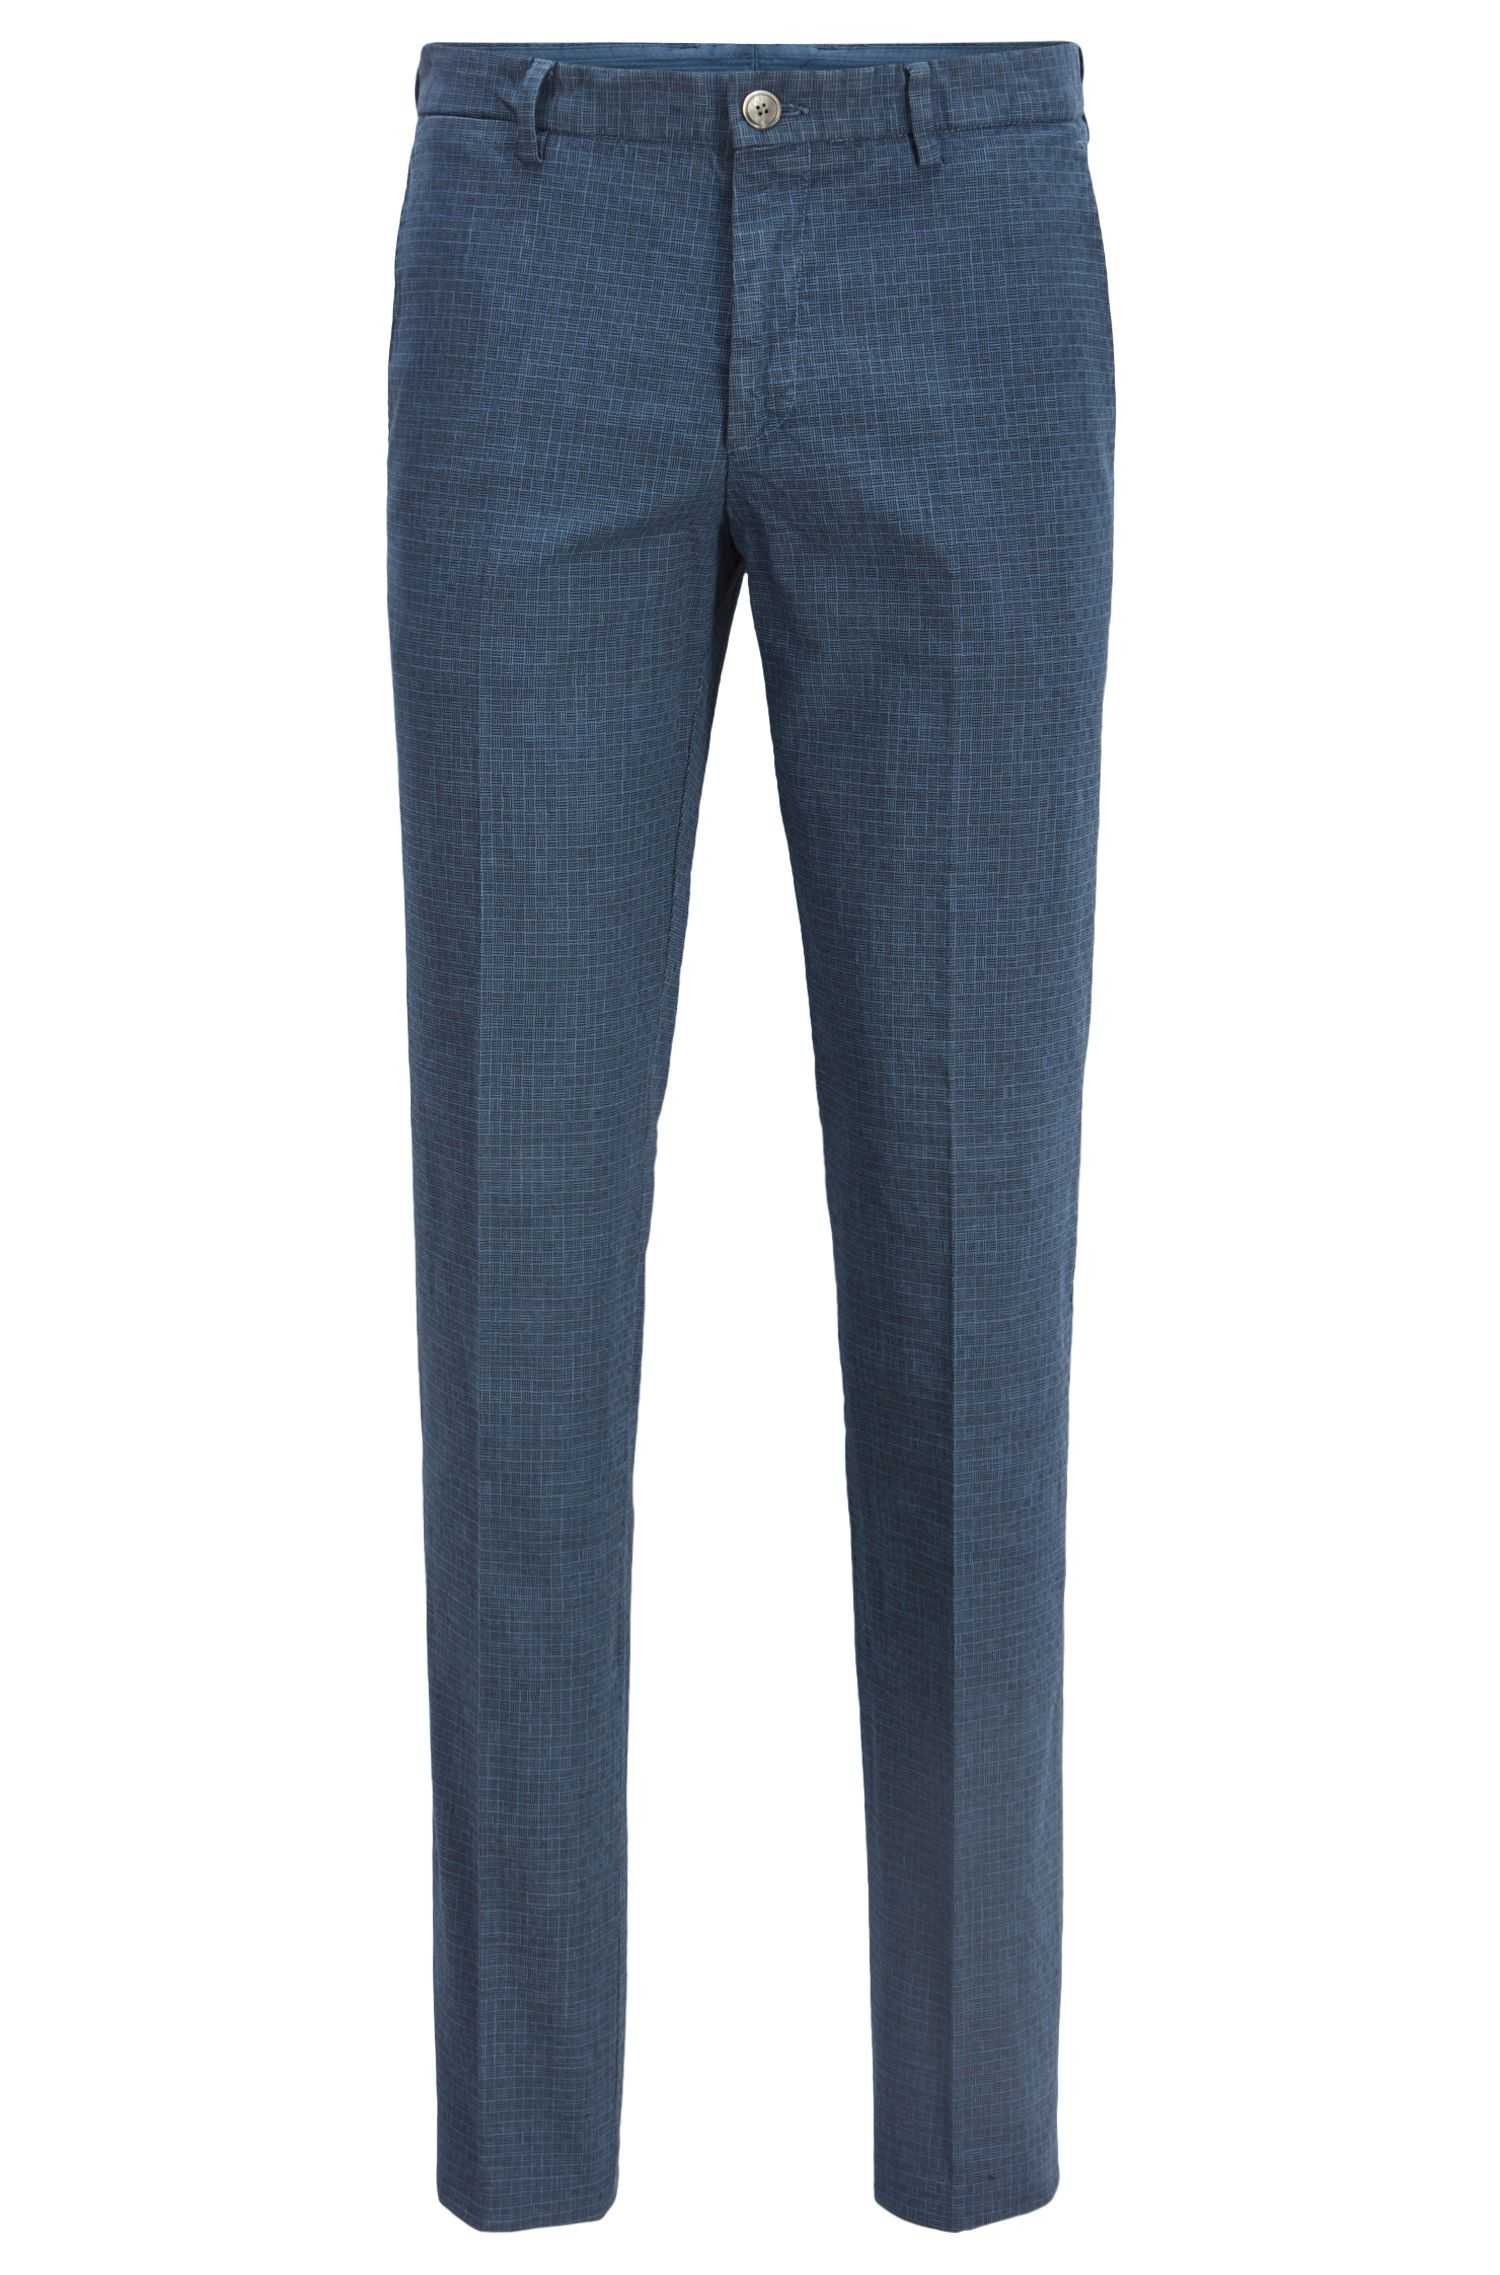 Pantalon Slim Fit en coton stretch avec ceinture queue d'hirondelle, Bleu vif